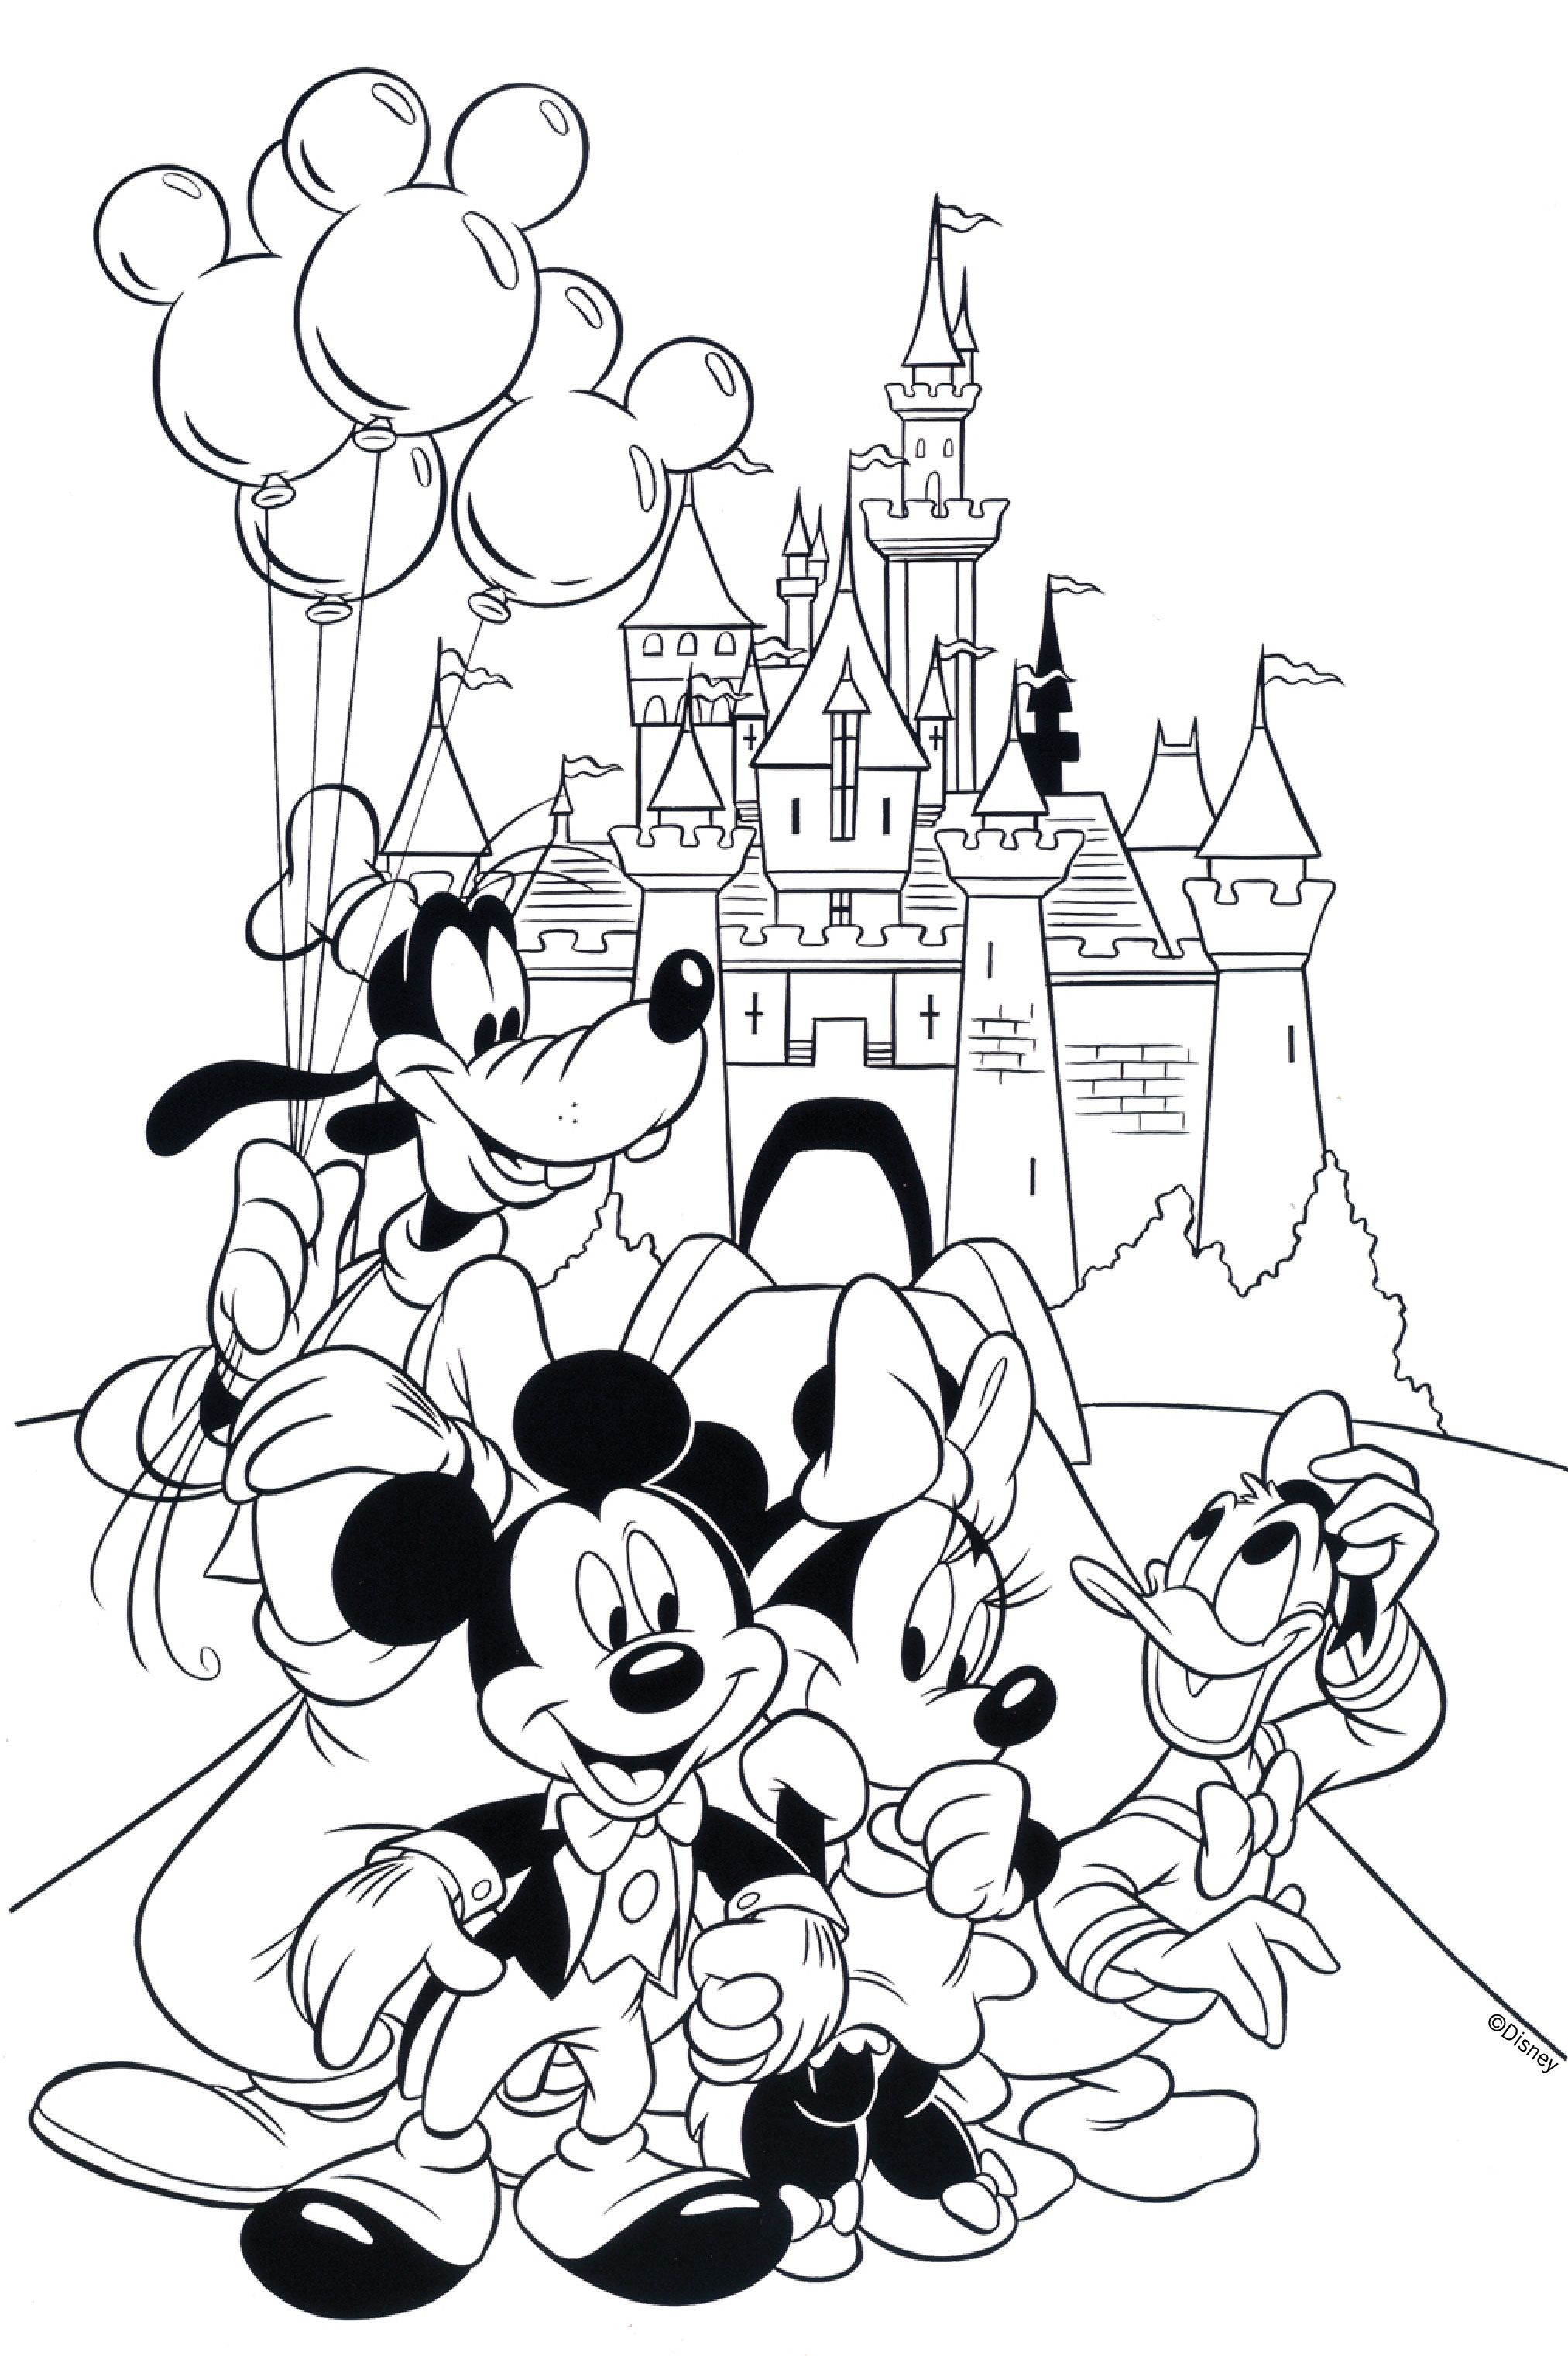 free printable disney coloring pages Free Disney Coloring Pages | Coloring Books | Disney coloring  free printable disney coloring pages